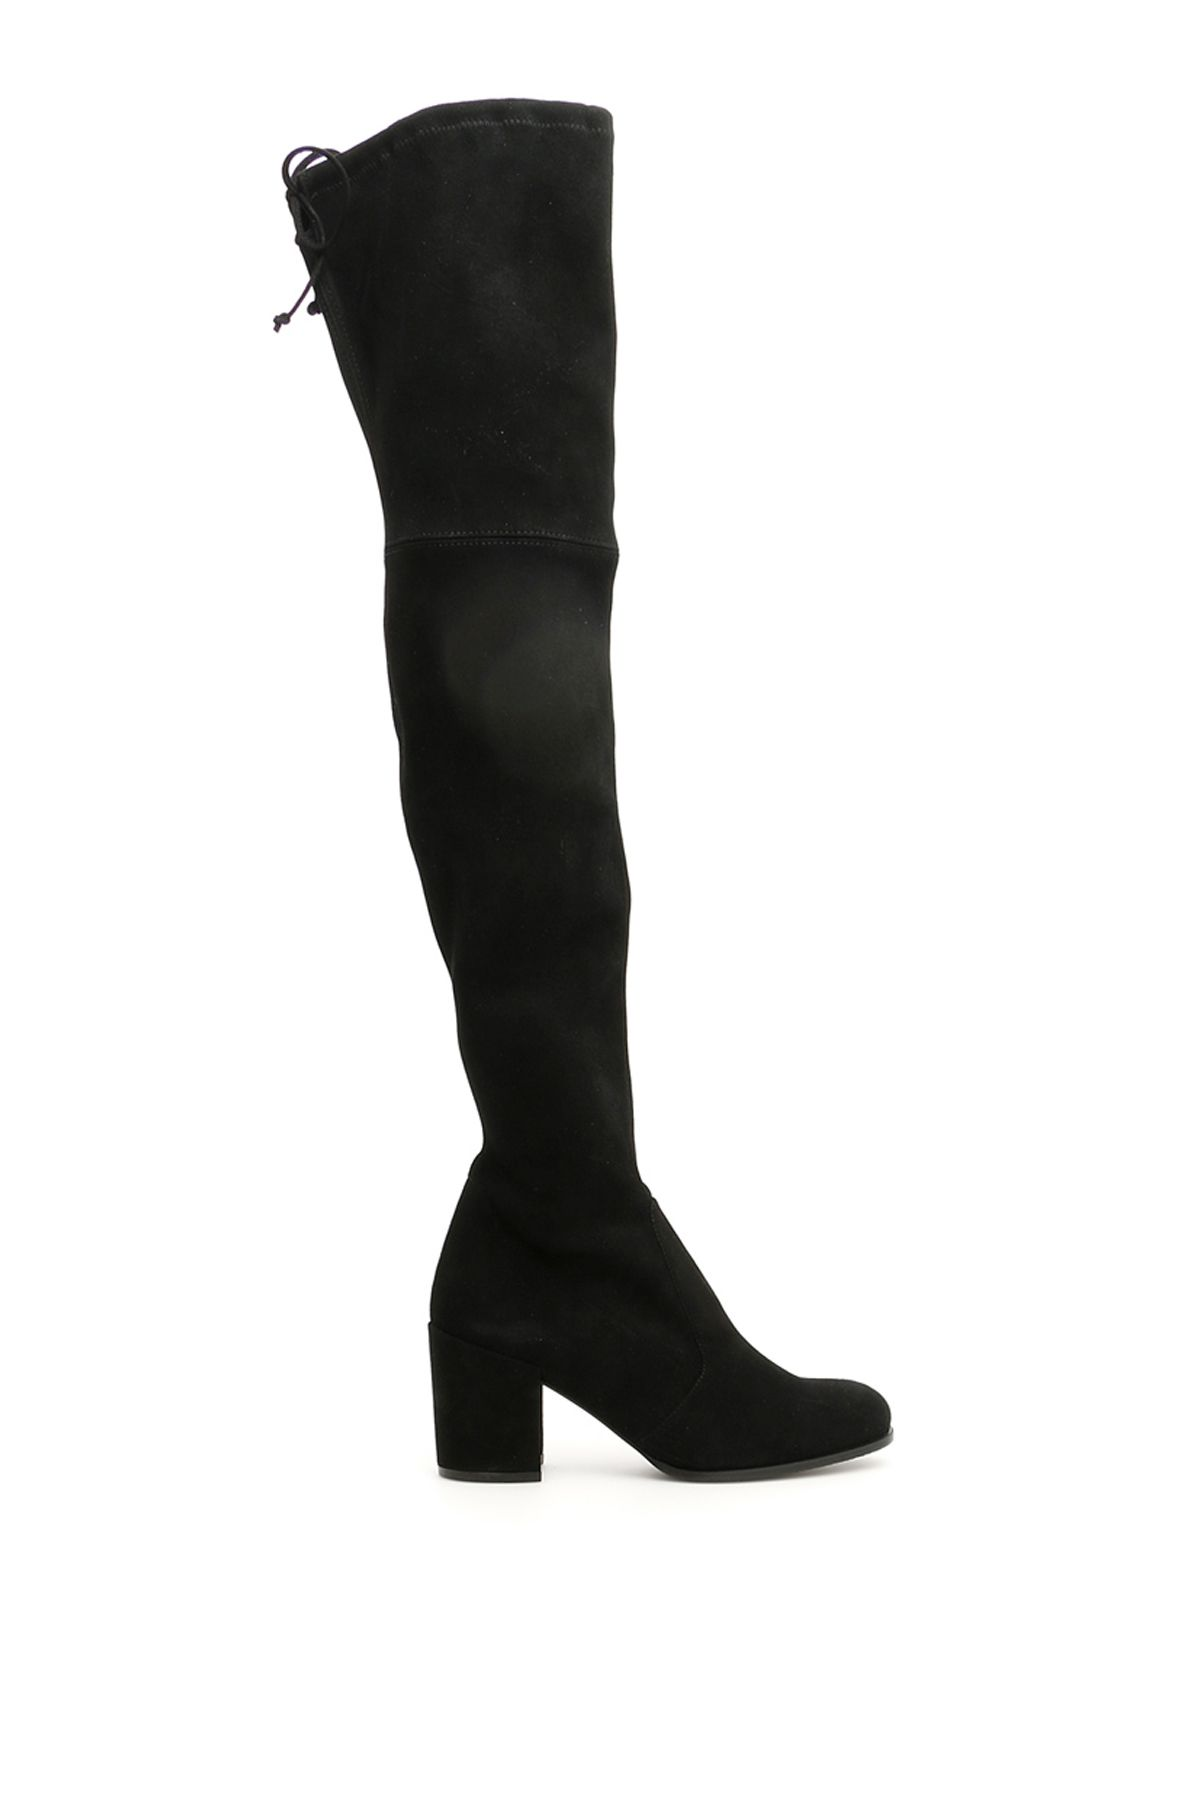 Suede Tieland Boots in Black